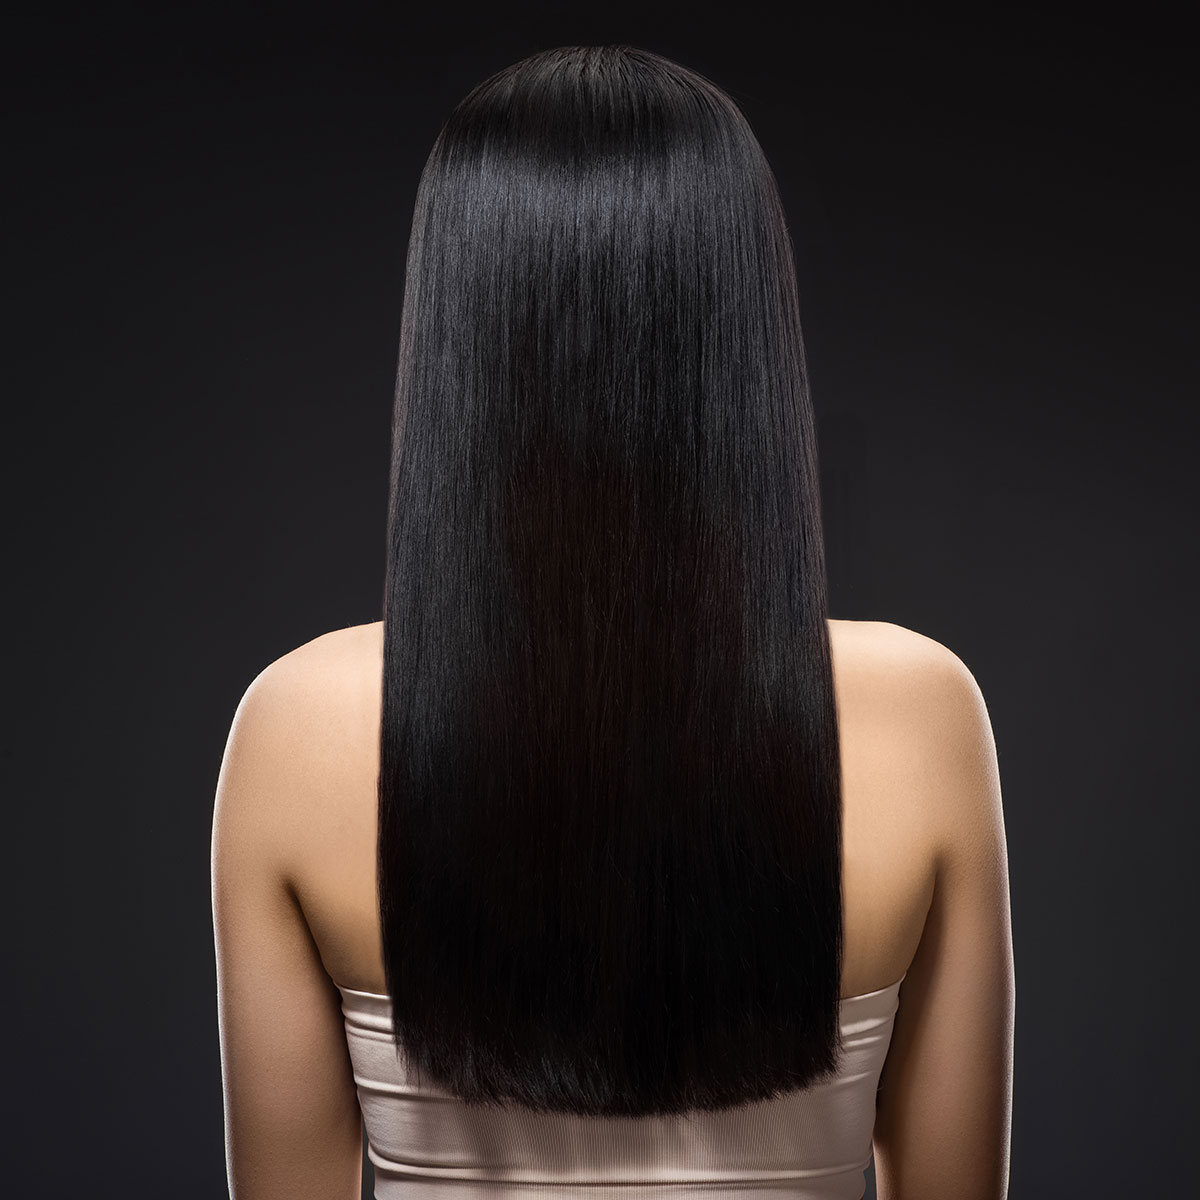 Keratin Treatment Services